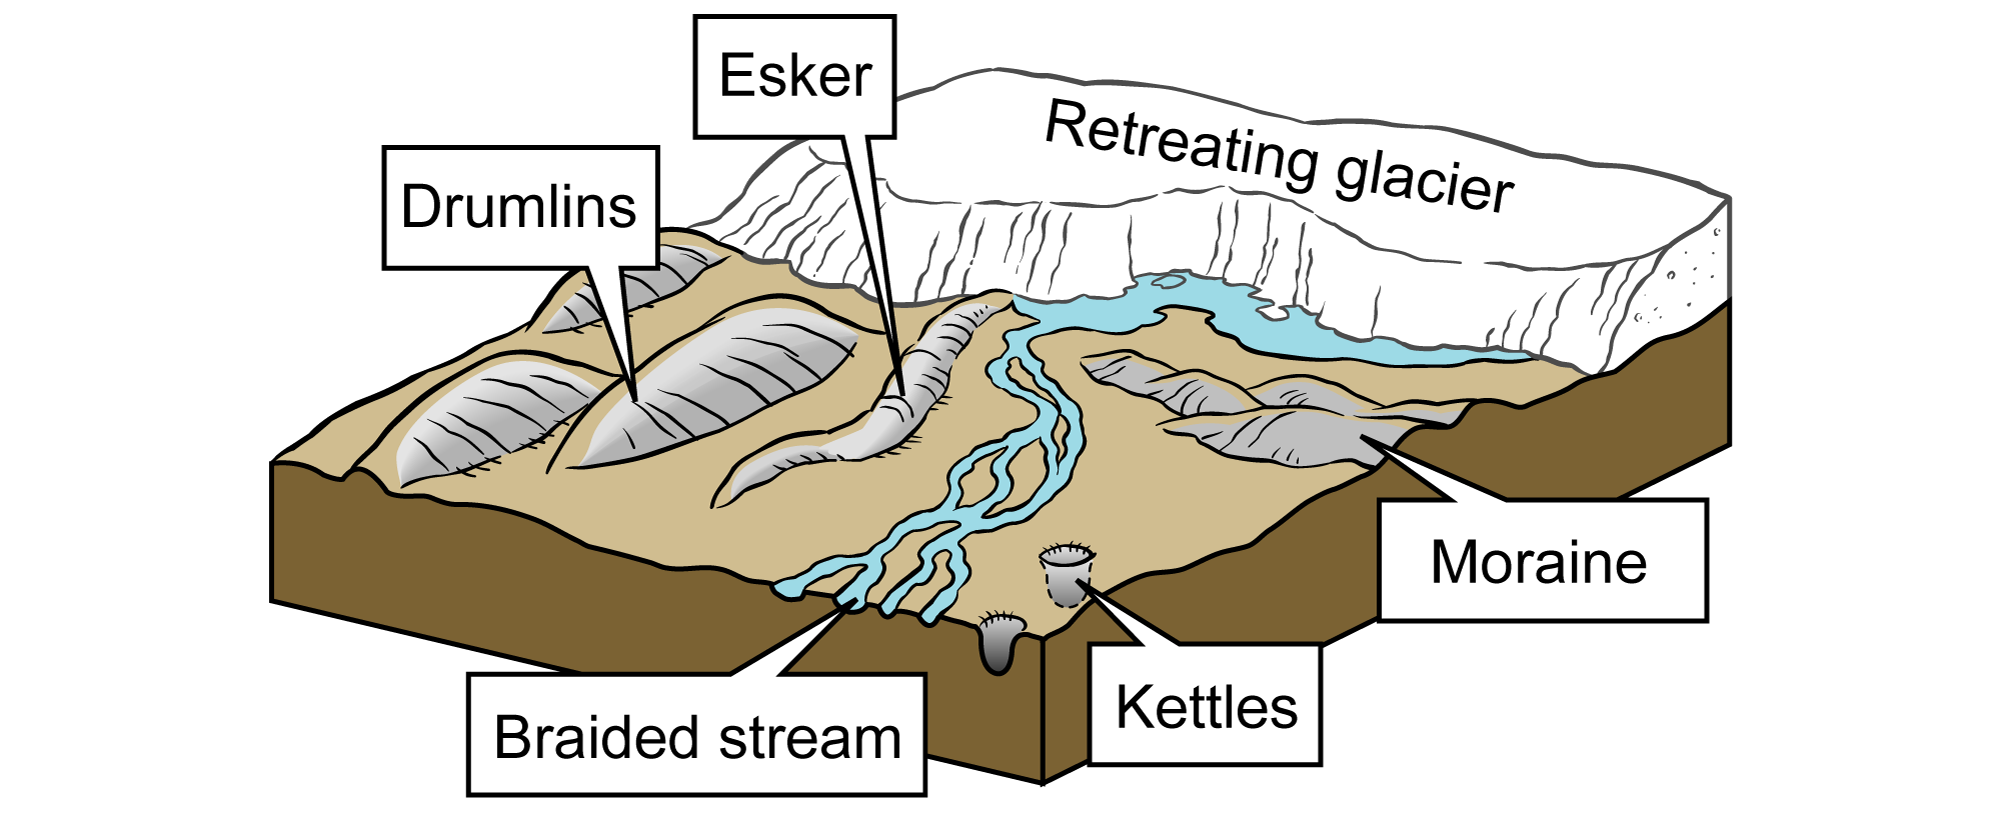 Illustration depicting different types of glacial features, including, drumlins, eskers, kettles, and moraines.